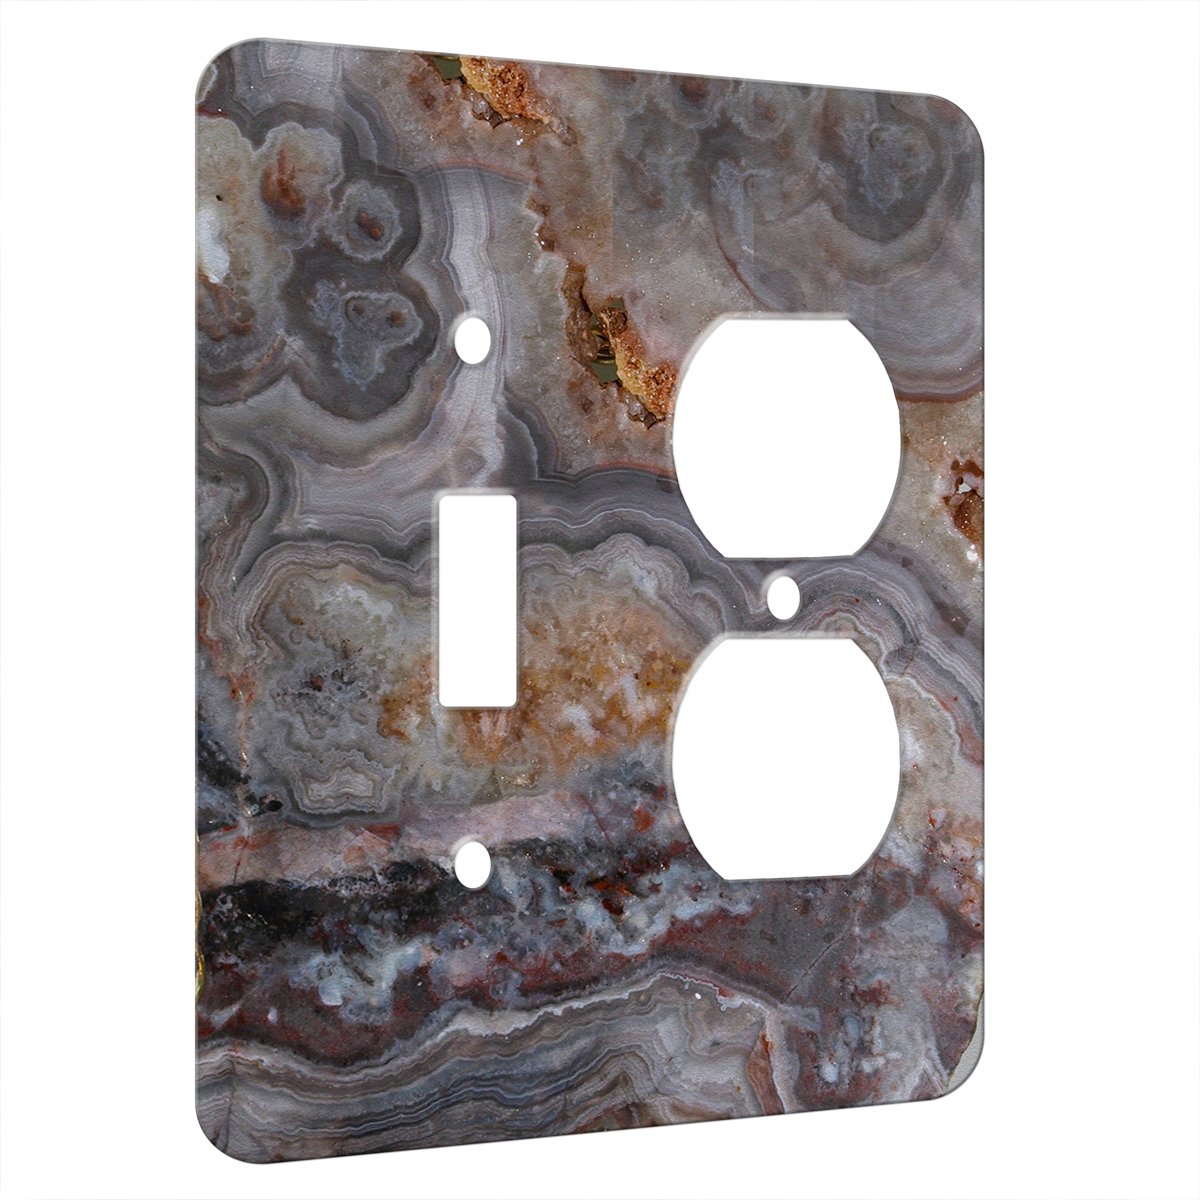 Agate Smokey Scape – AC Outlet Combo Switch Plate 2 Gang Cover ...